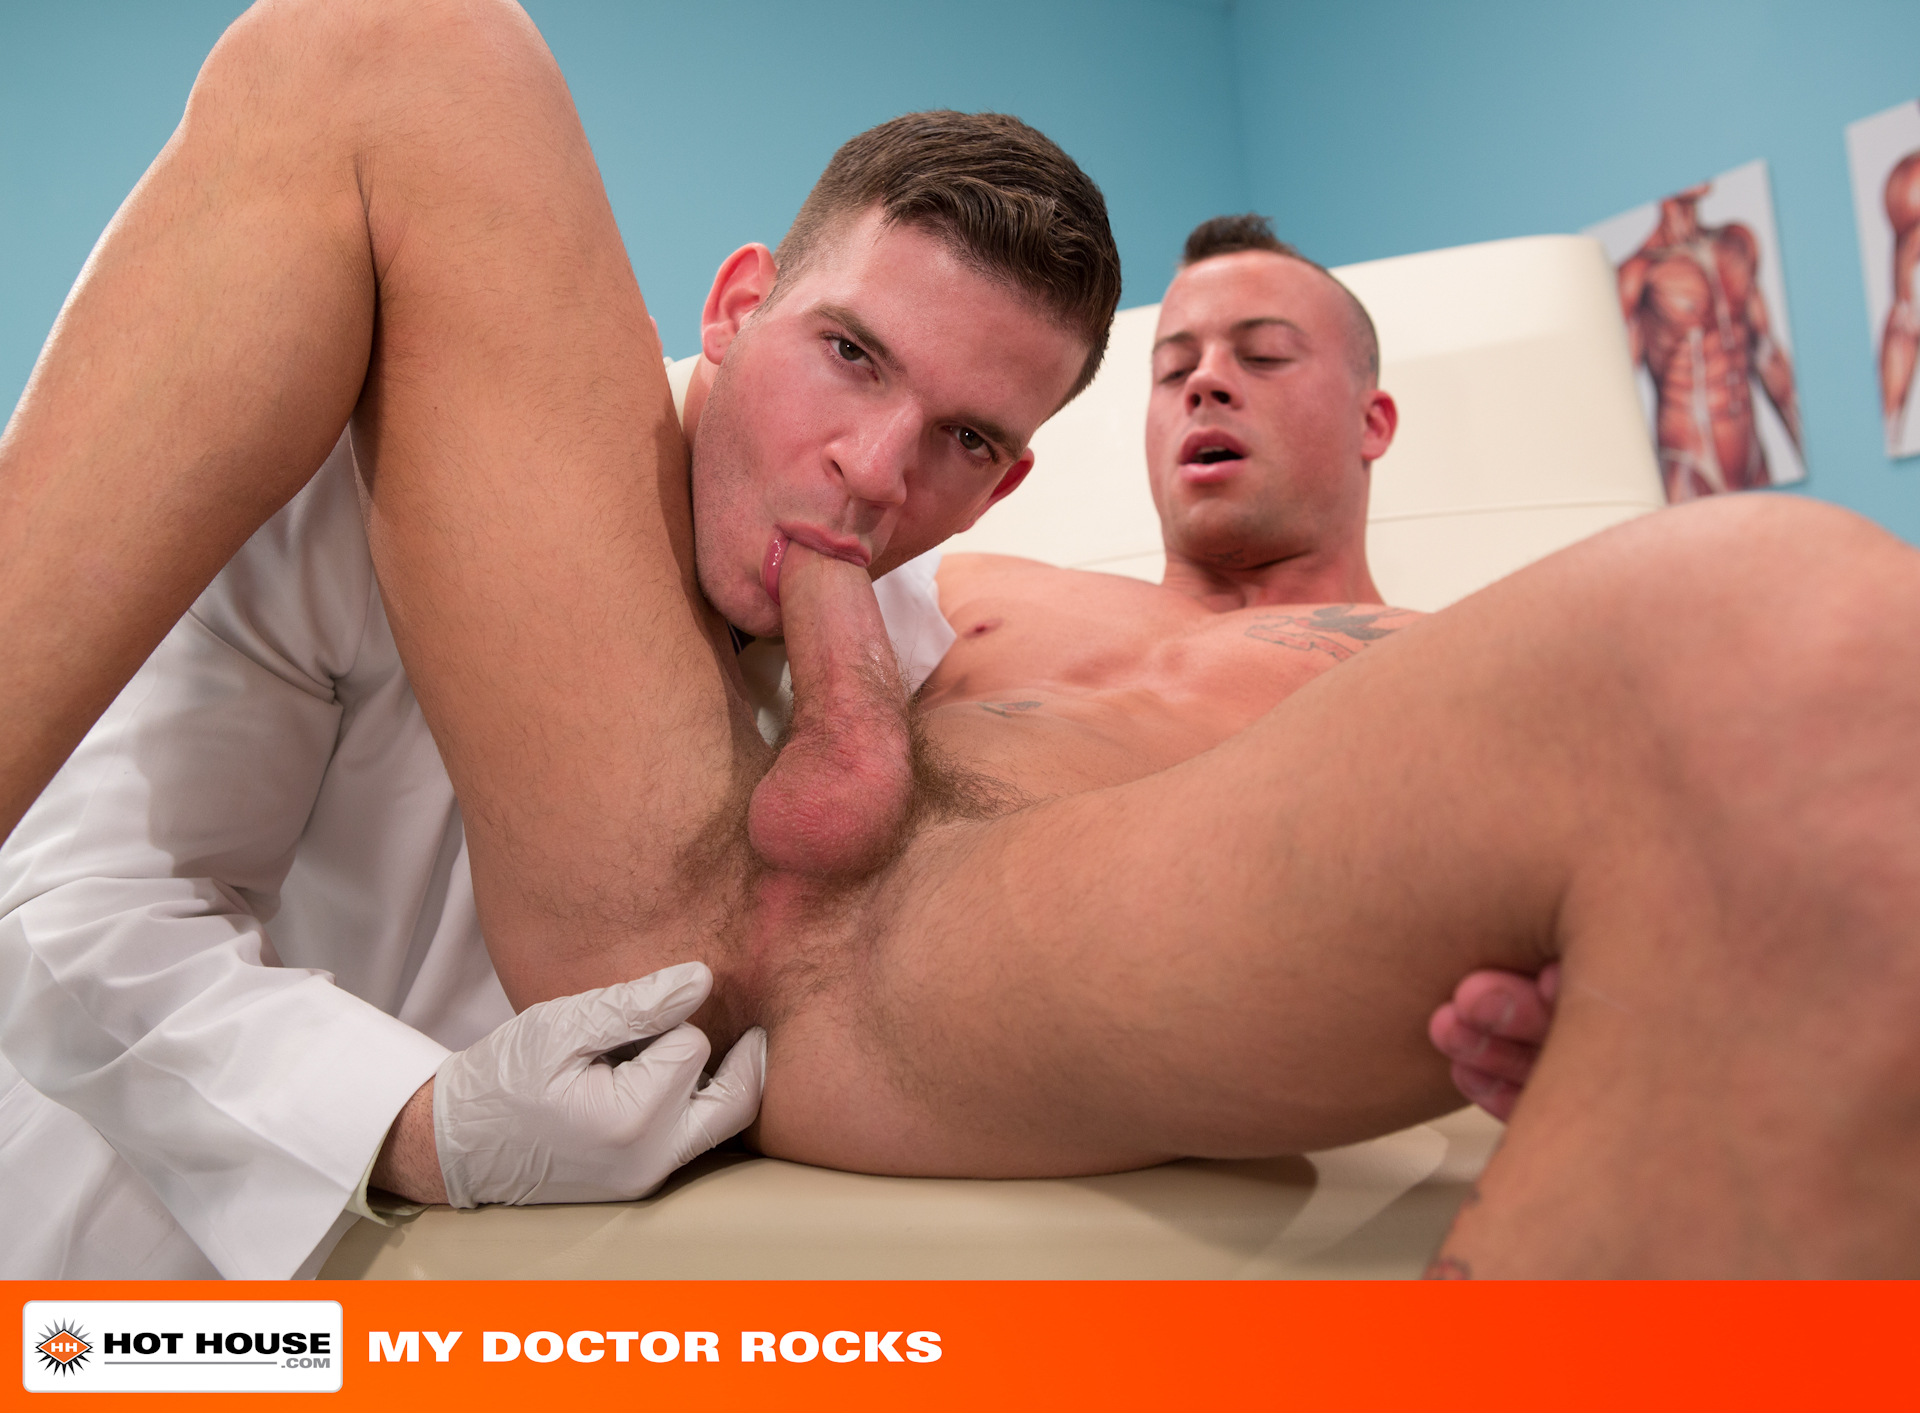 Gay doctor fetish free and breaks